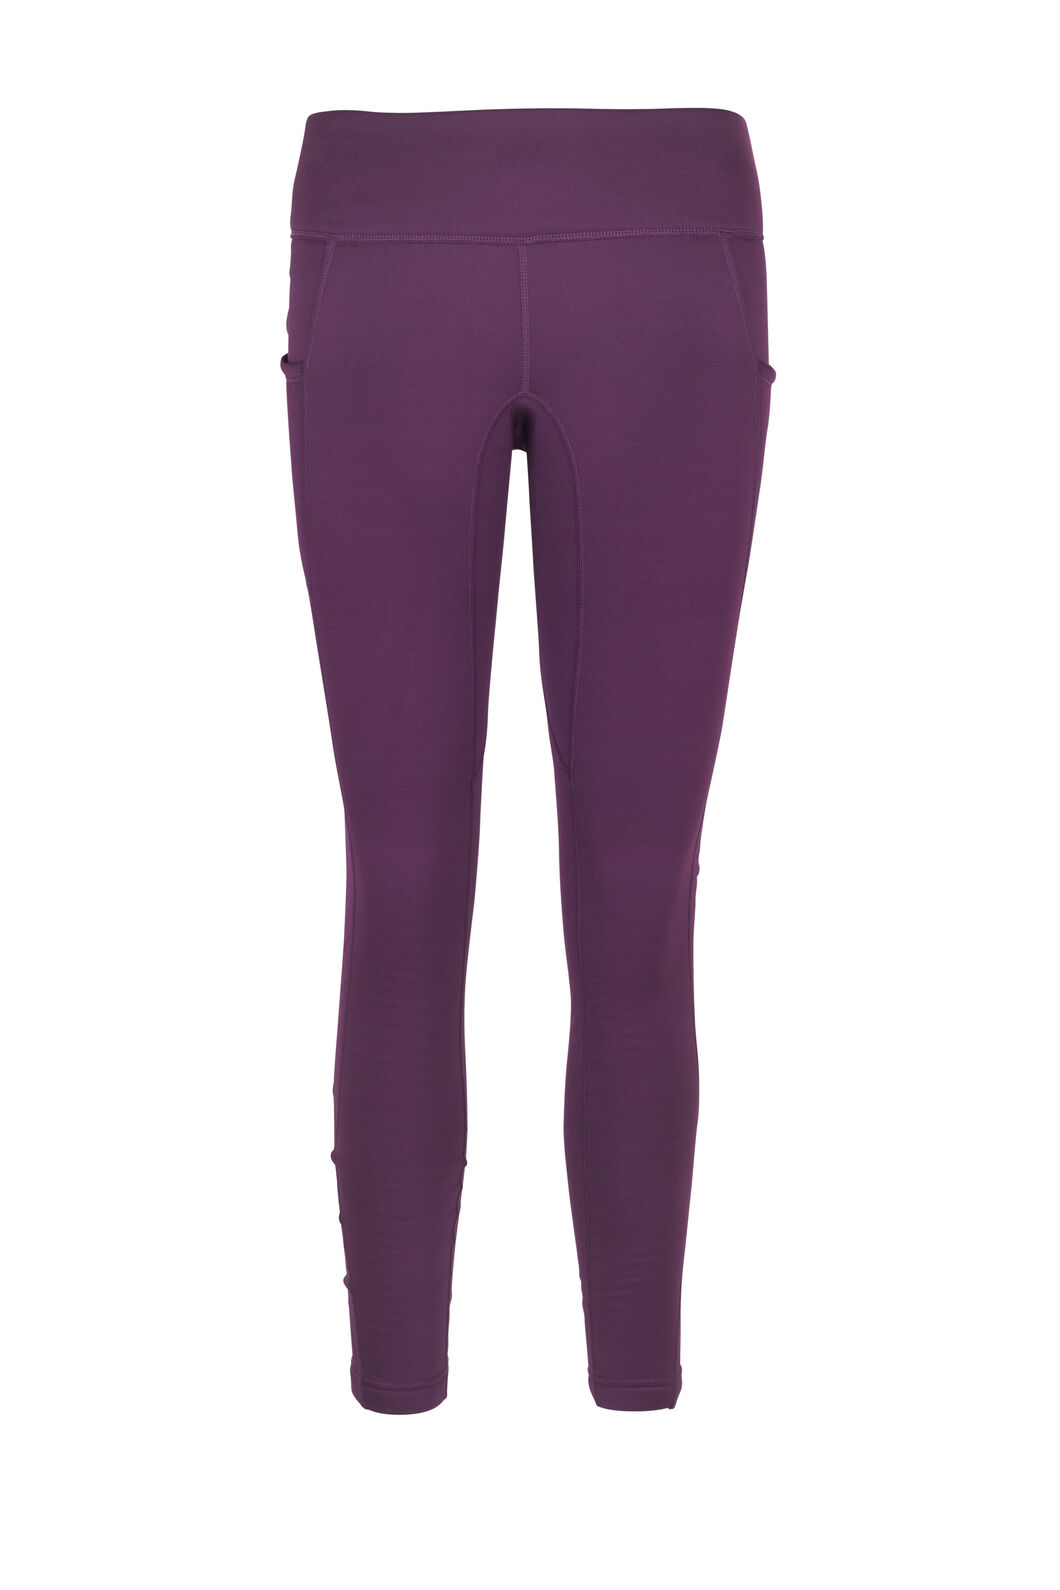 Macpac Traverse Tights - Women's, Potent Purple, hi-res